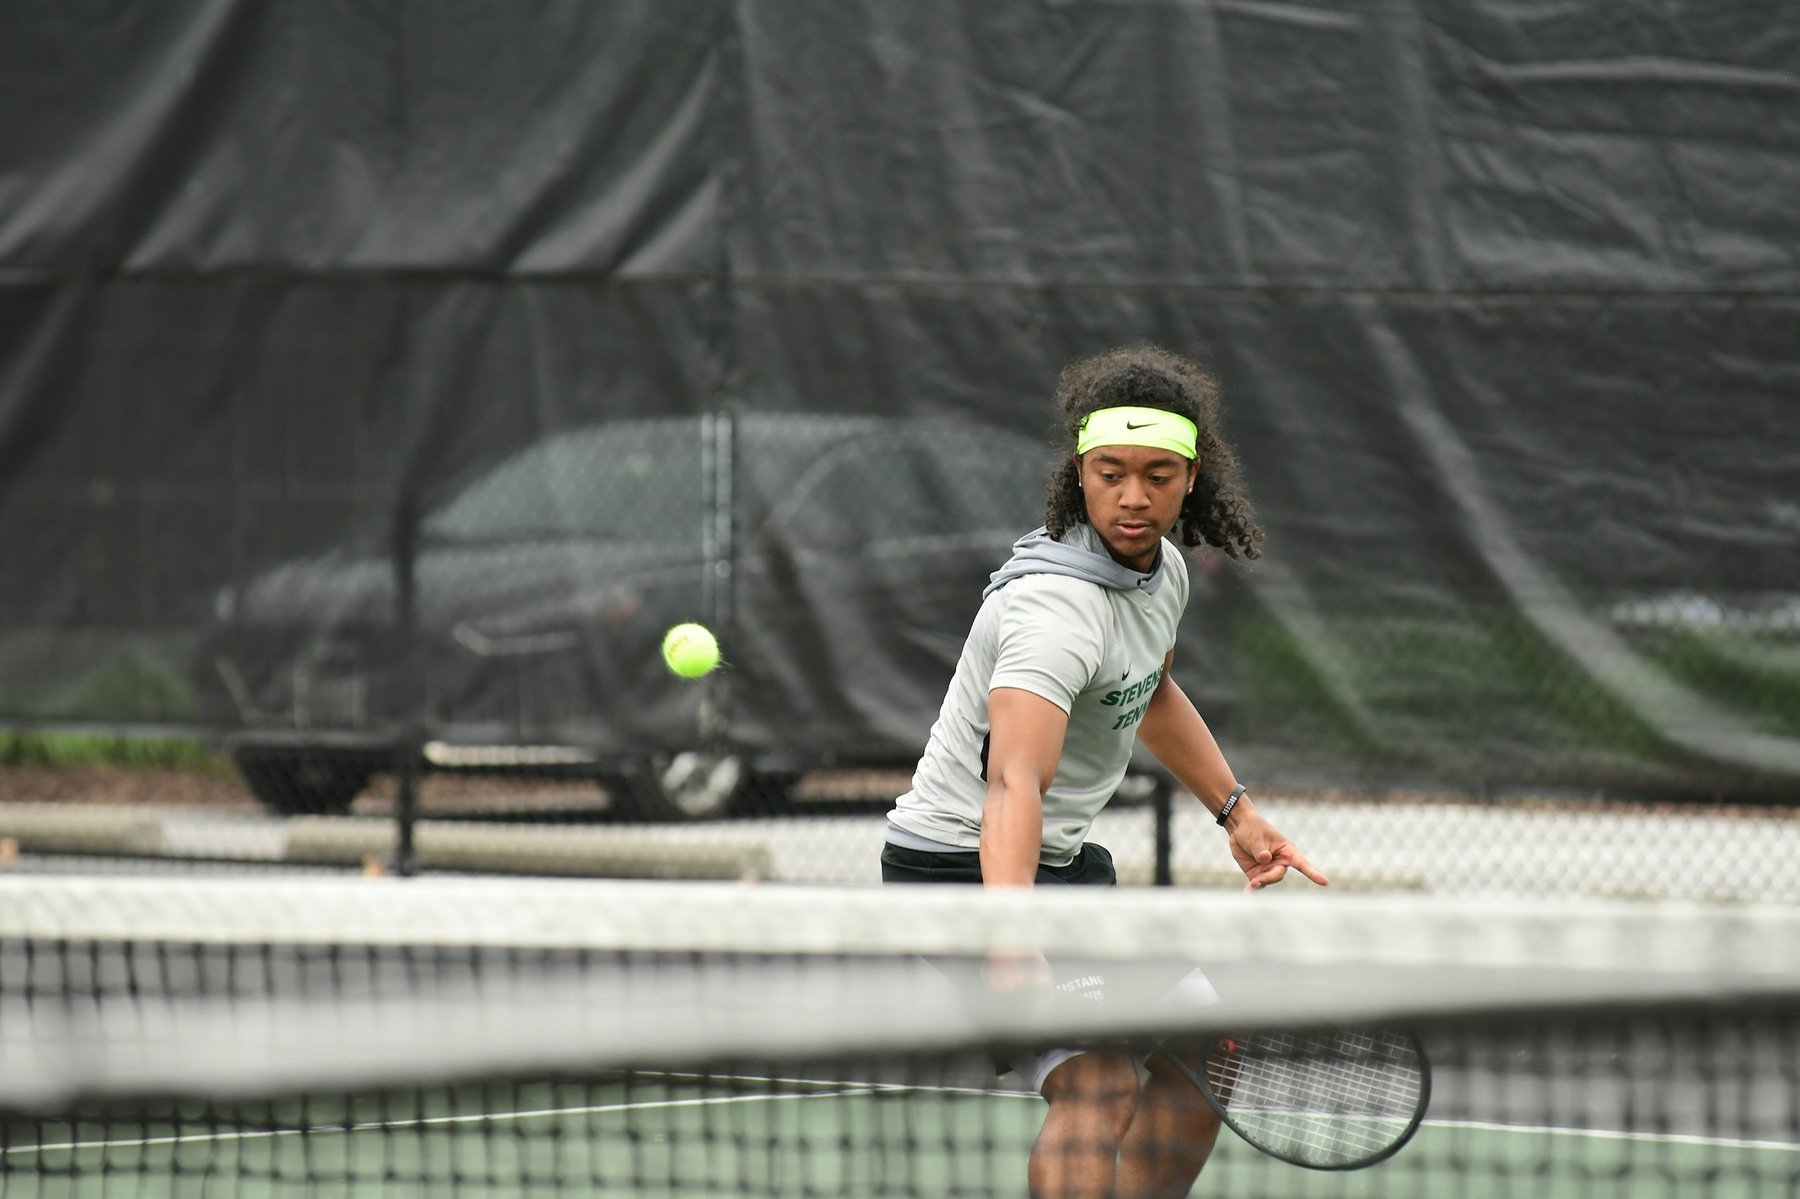 Men's Tennis Dominates Catholic in Season Opener